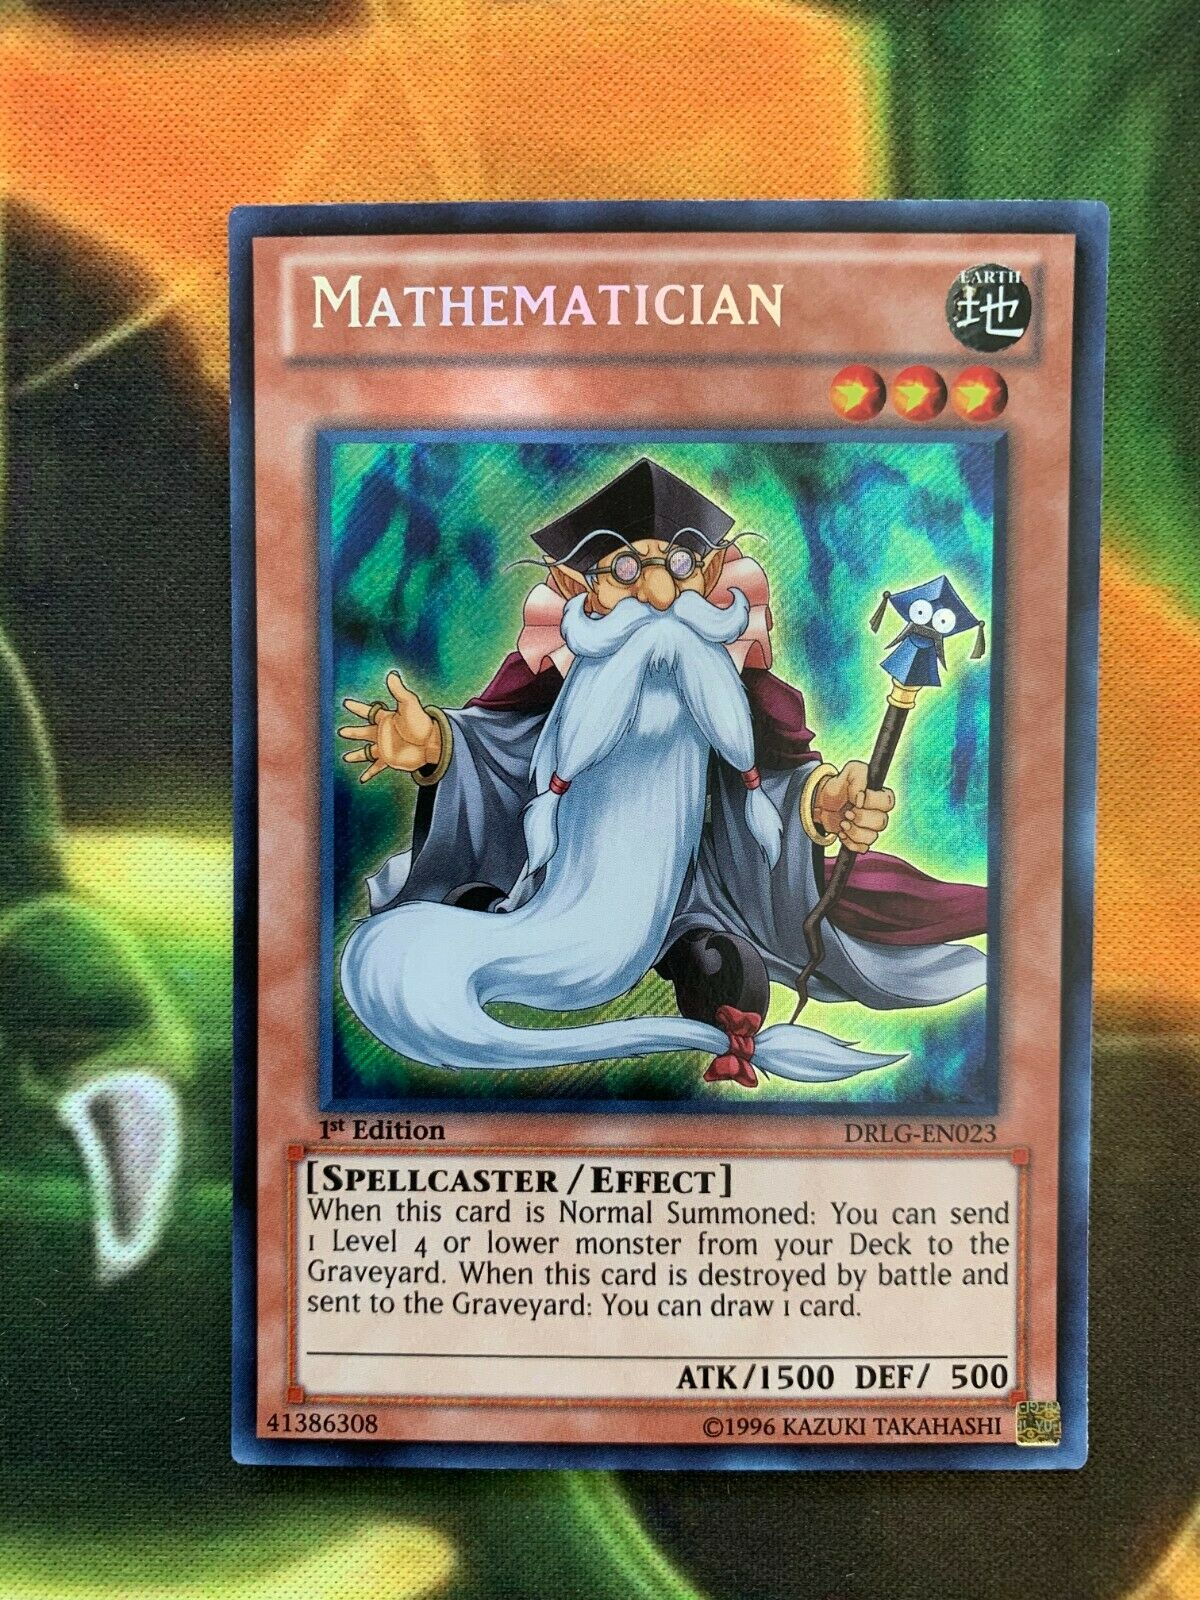 Yugioh Mathematician DRLG-EN023 Secret Rare 1st Ed. Mint  - $5.95